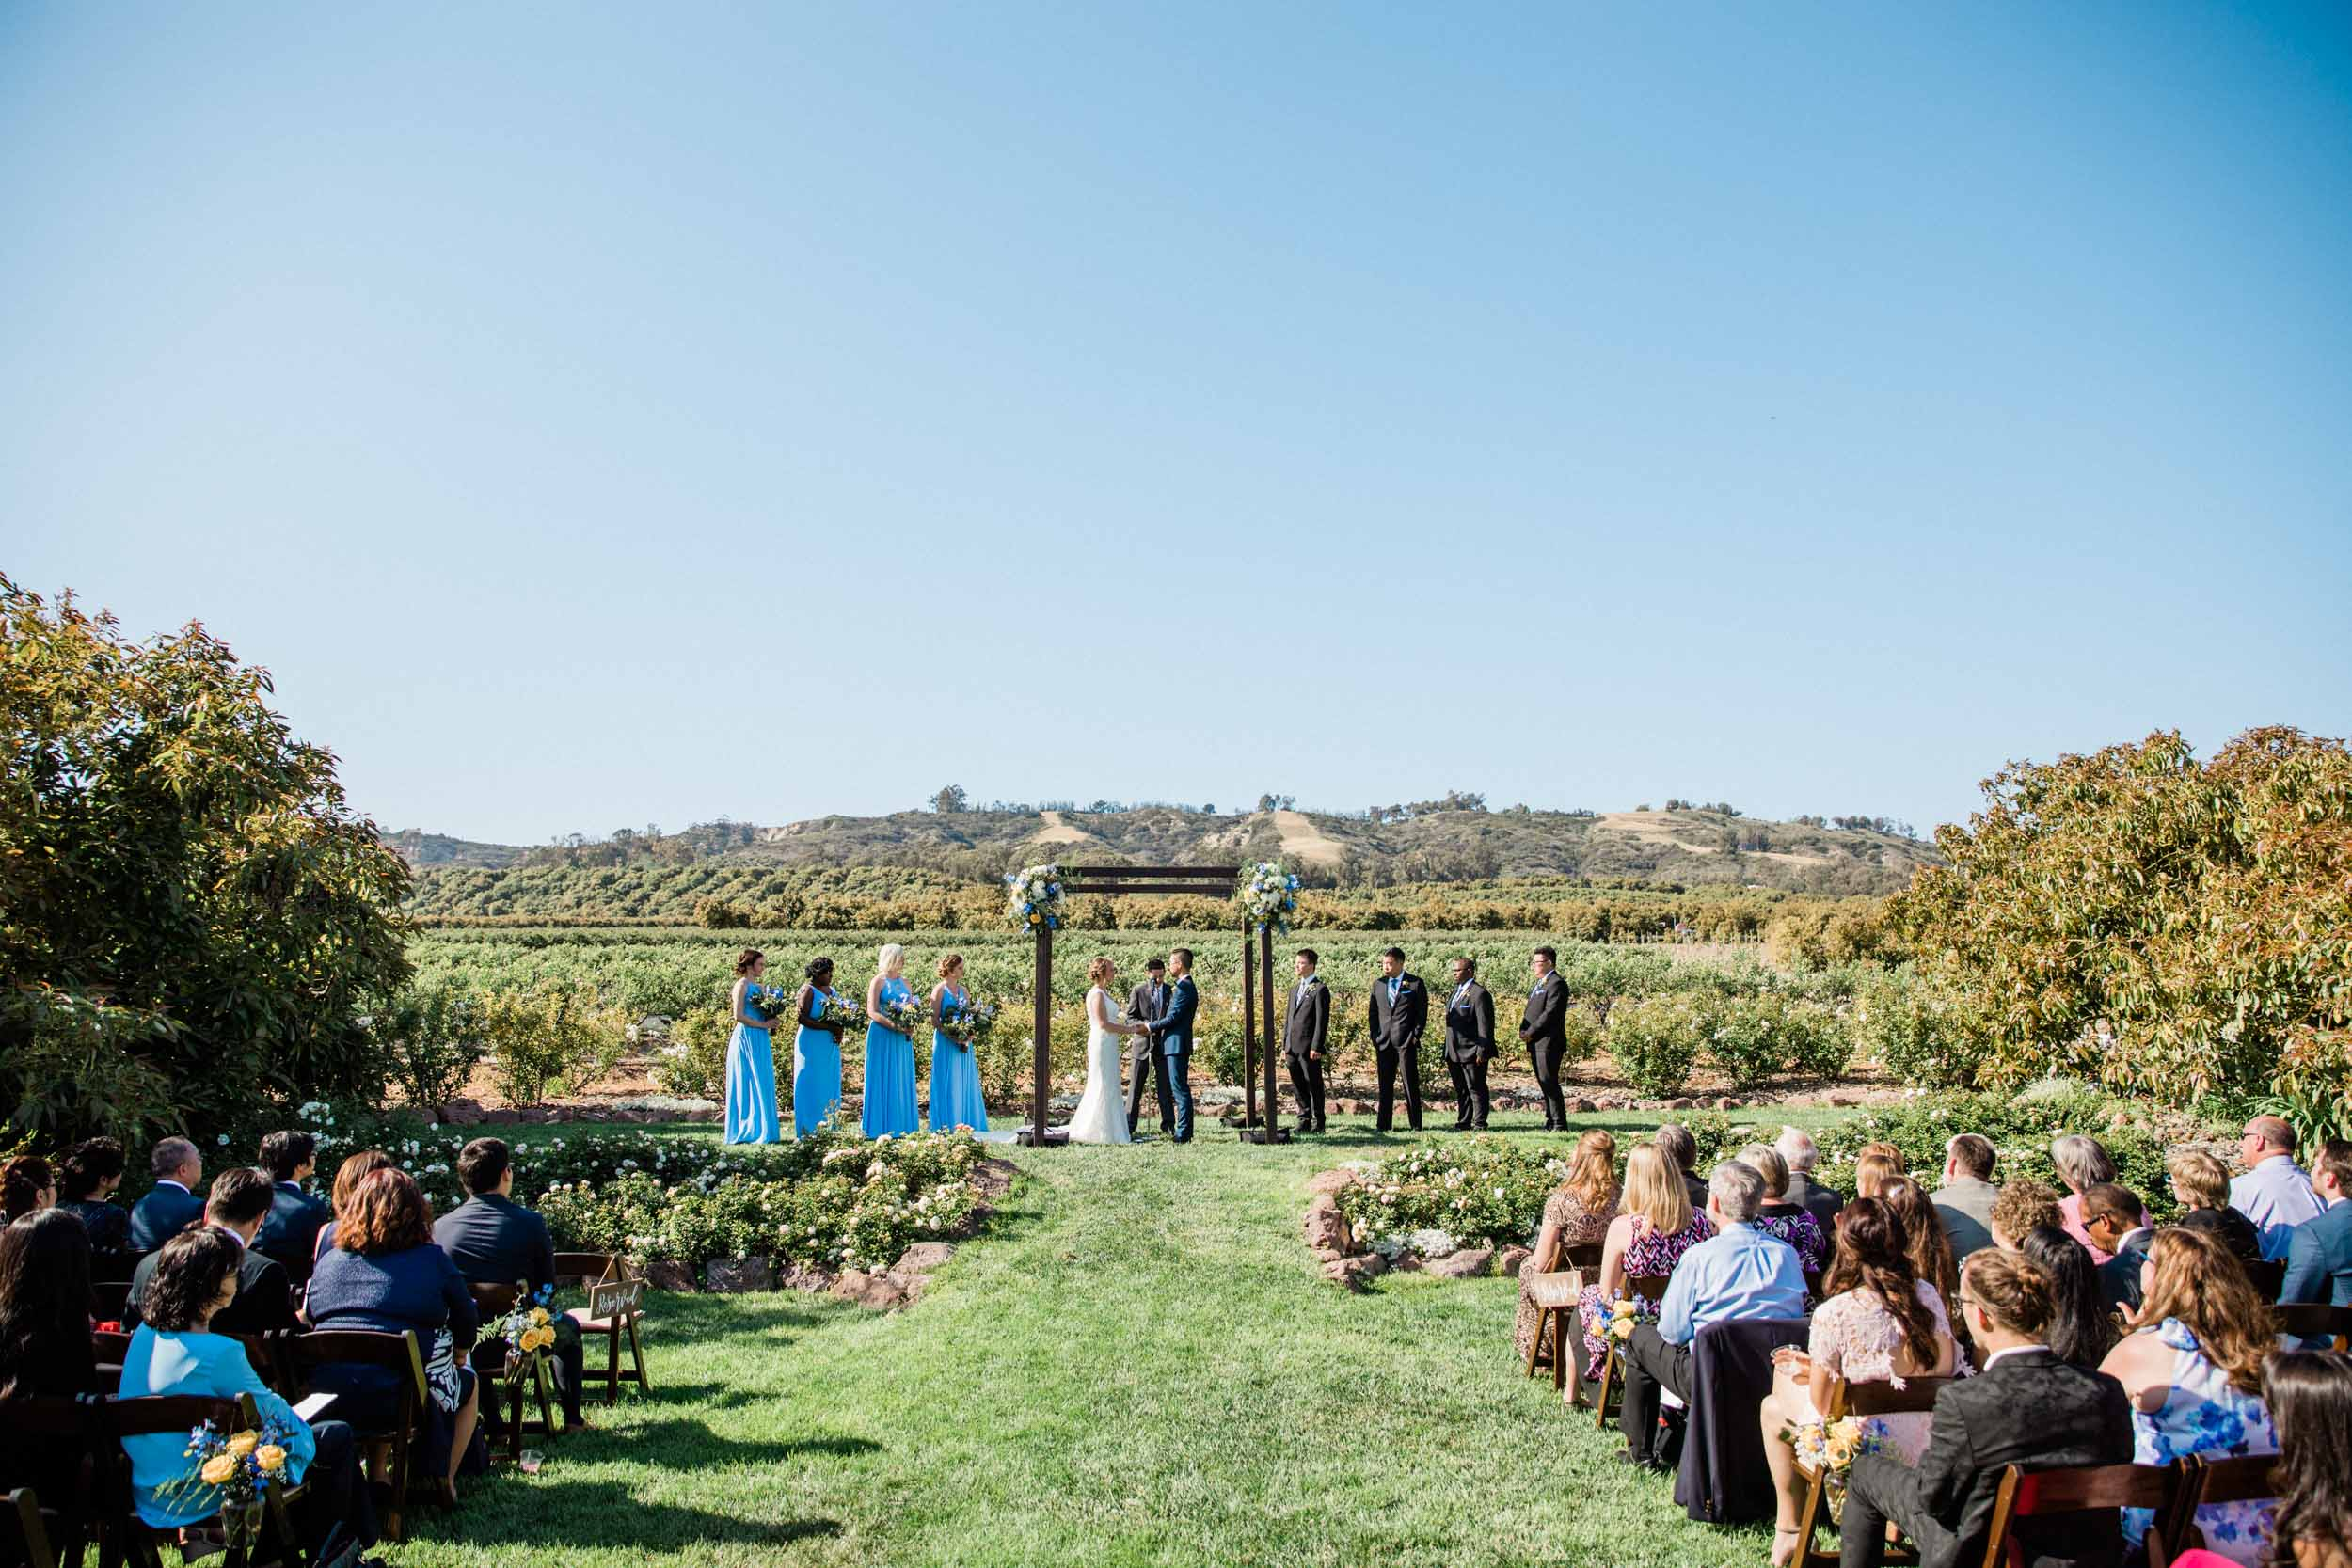 BKM-Photography-Gerry-Ranch-Southern-California-Wedding-0085.jpg